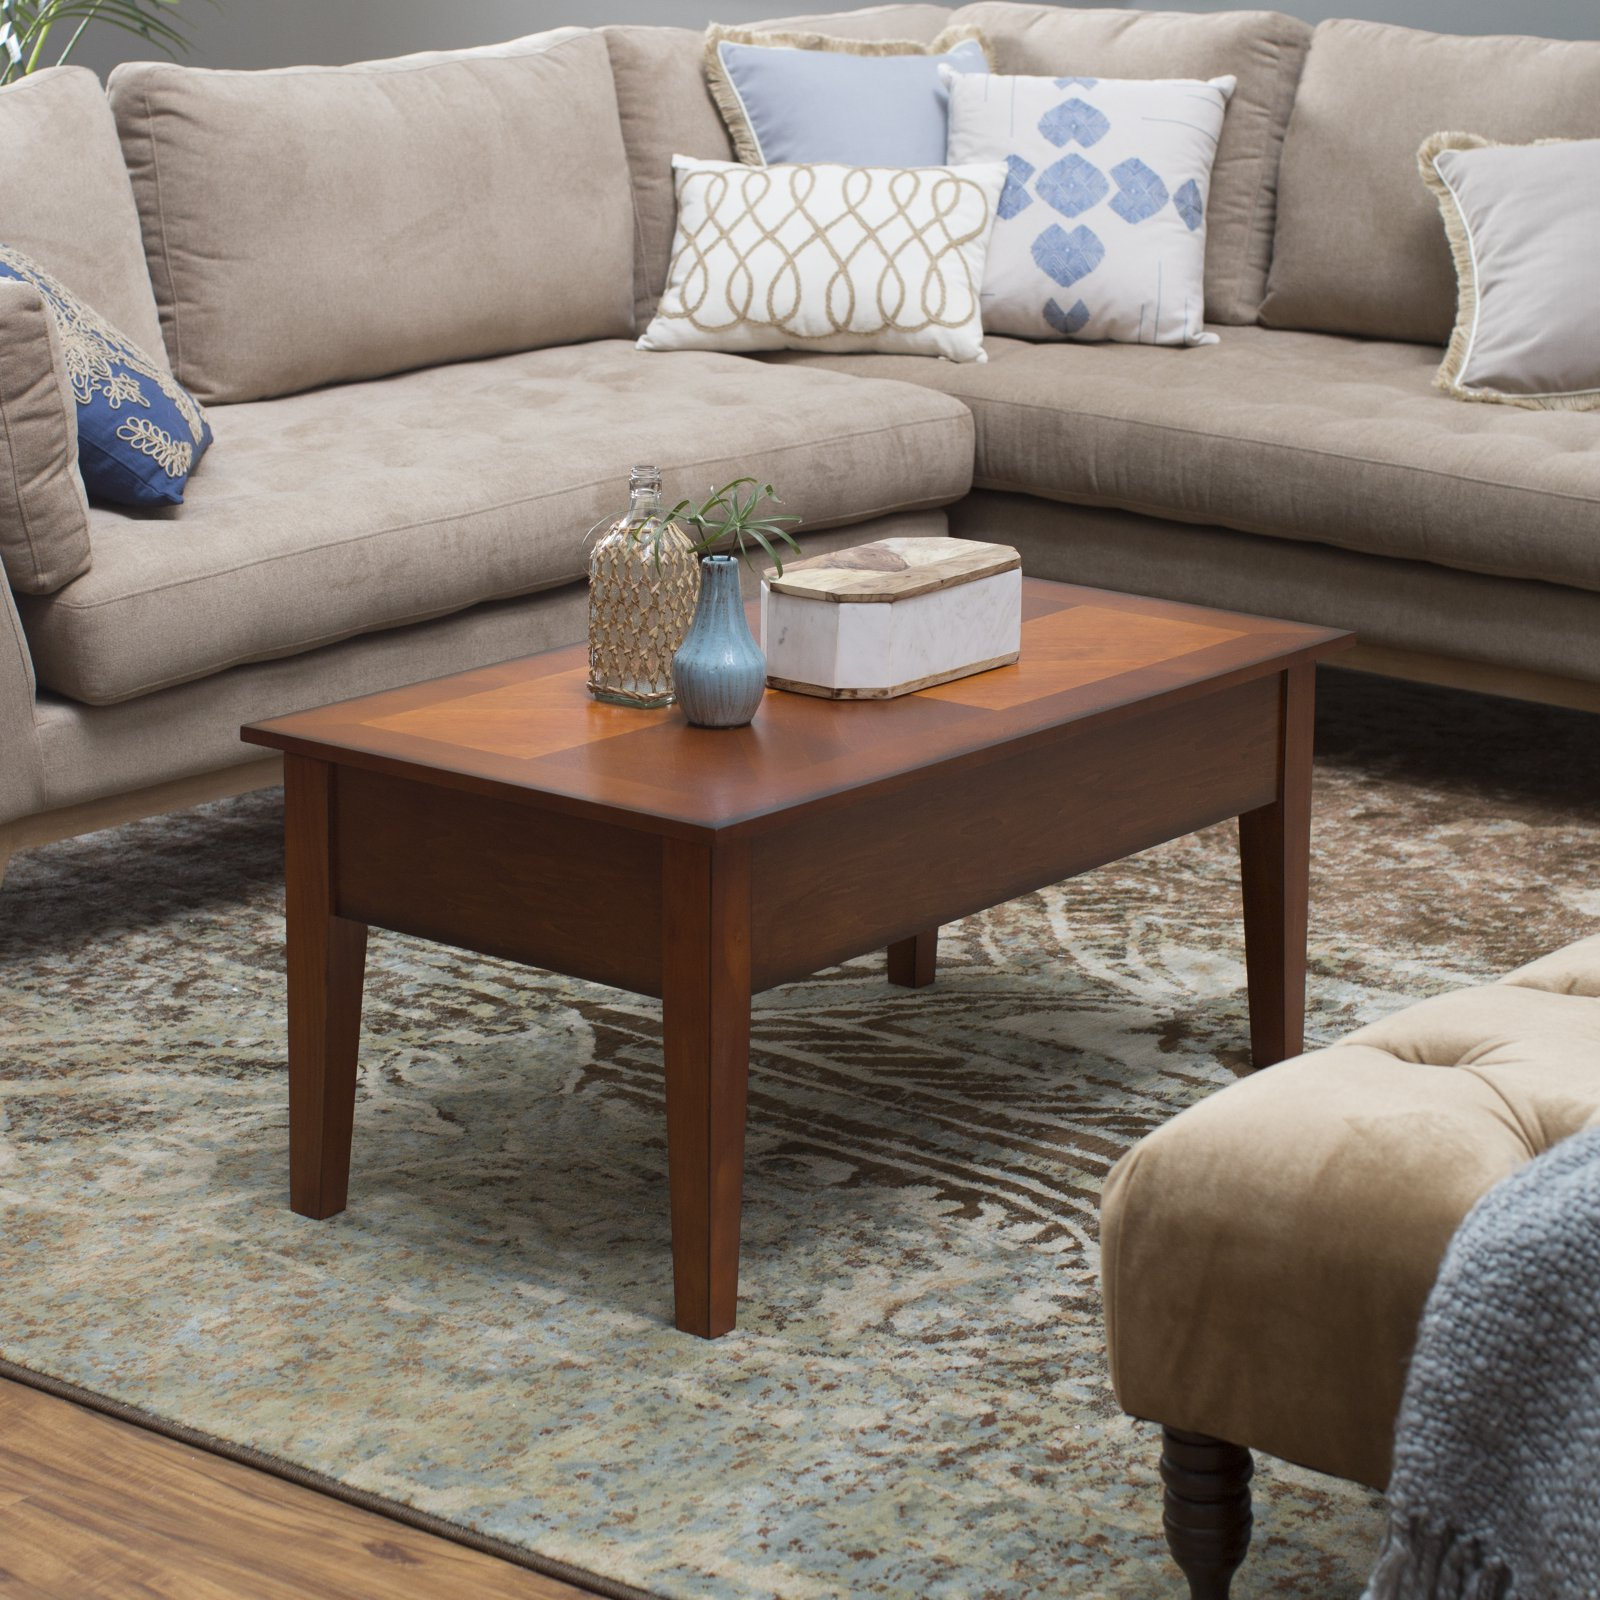 Turner Lift Top Coffee Table - Oak